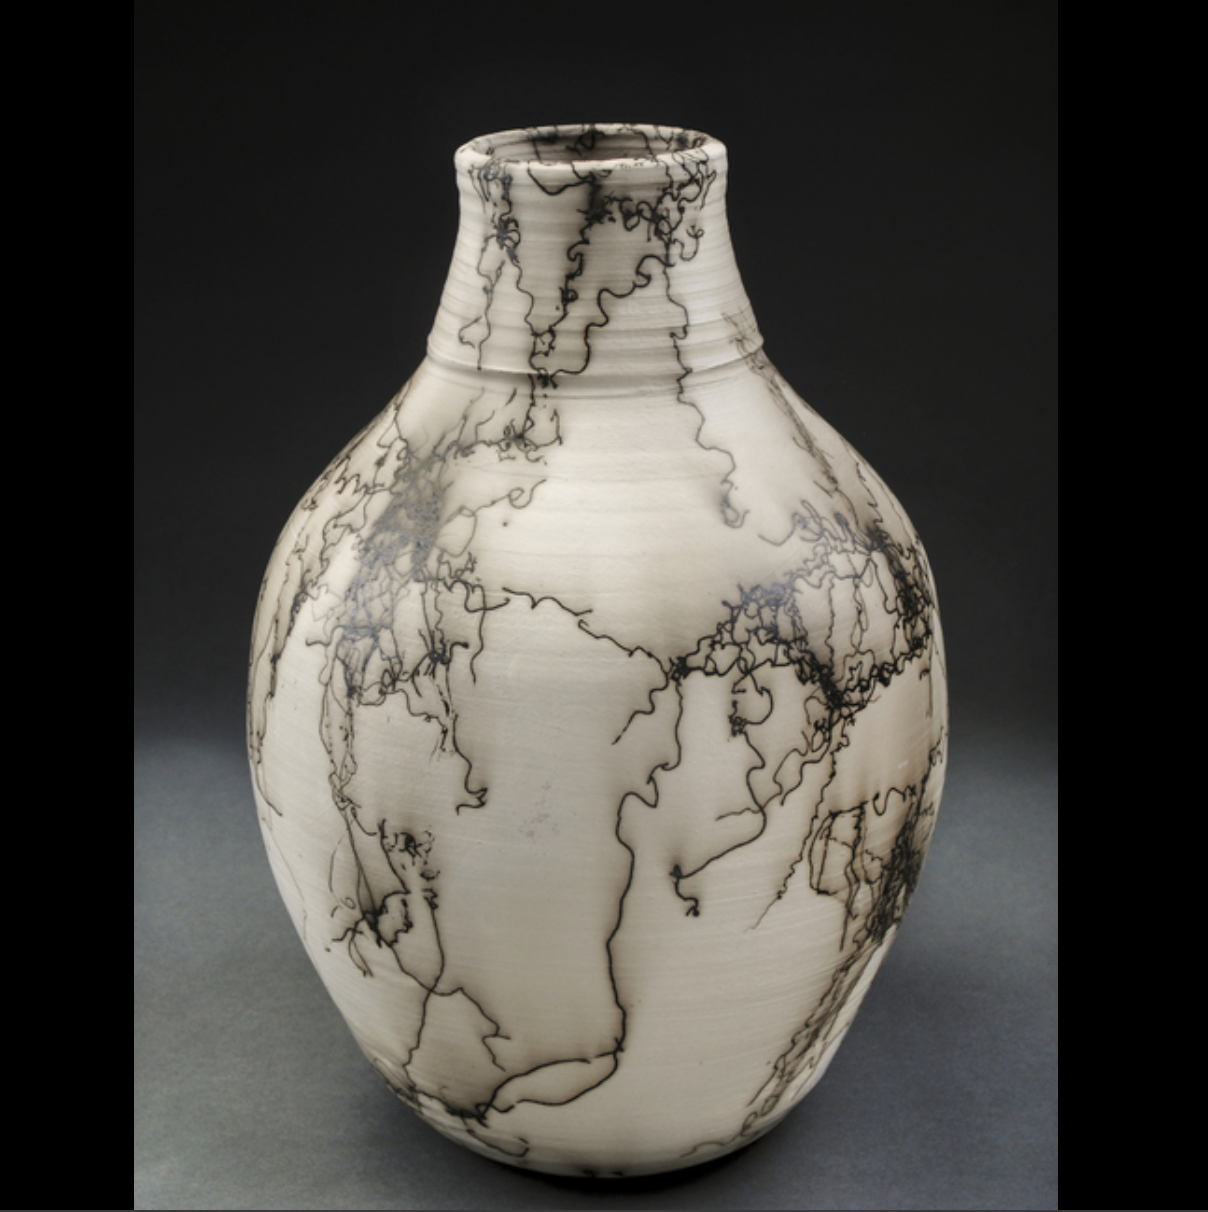 Rebecca Skow - One of a kind art vessels, thrown and altered with firing techniques that include wood firing and horse hair raku.